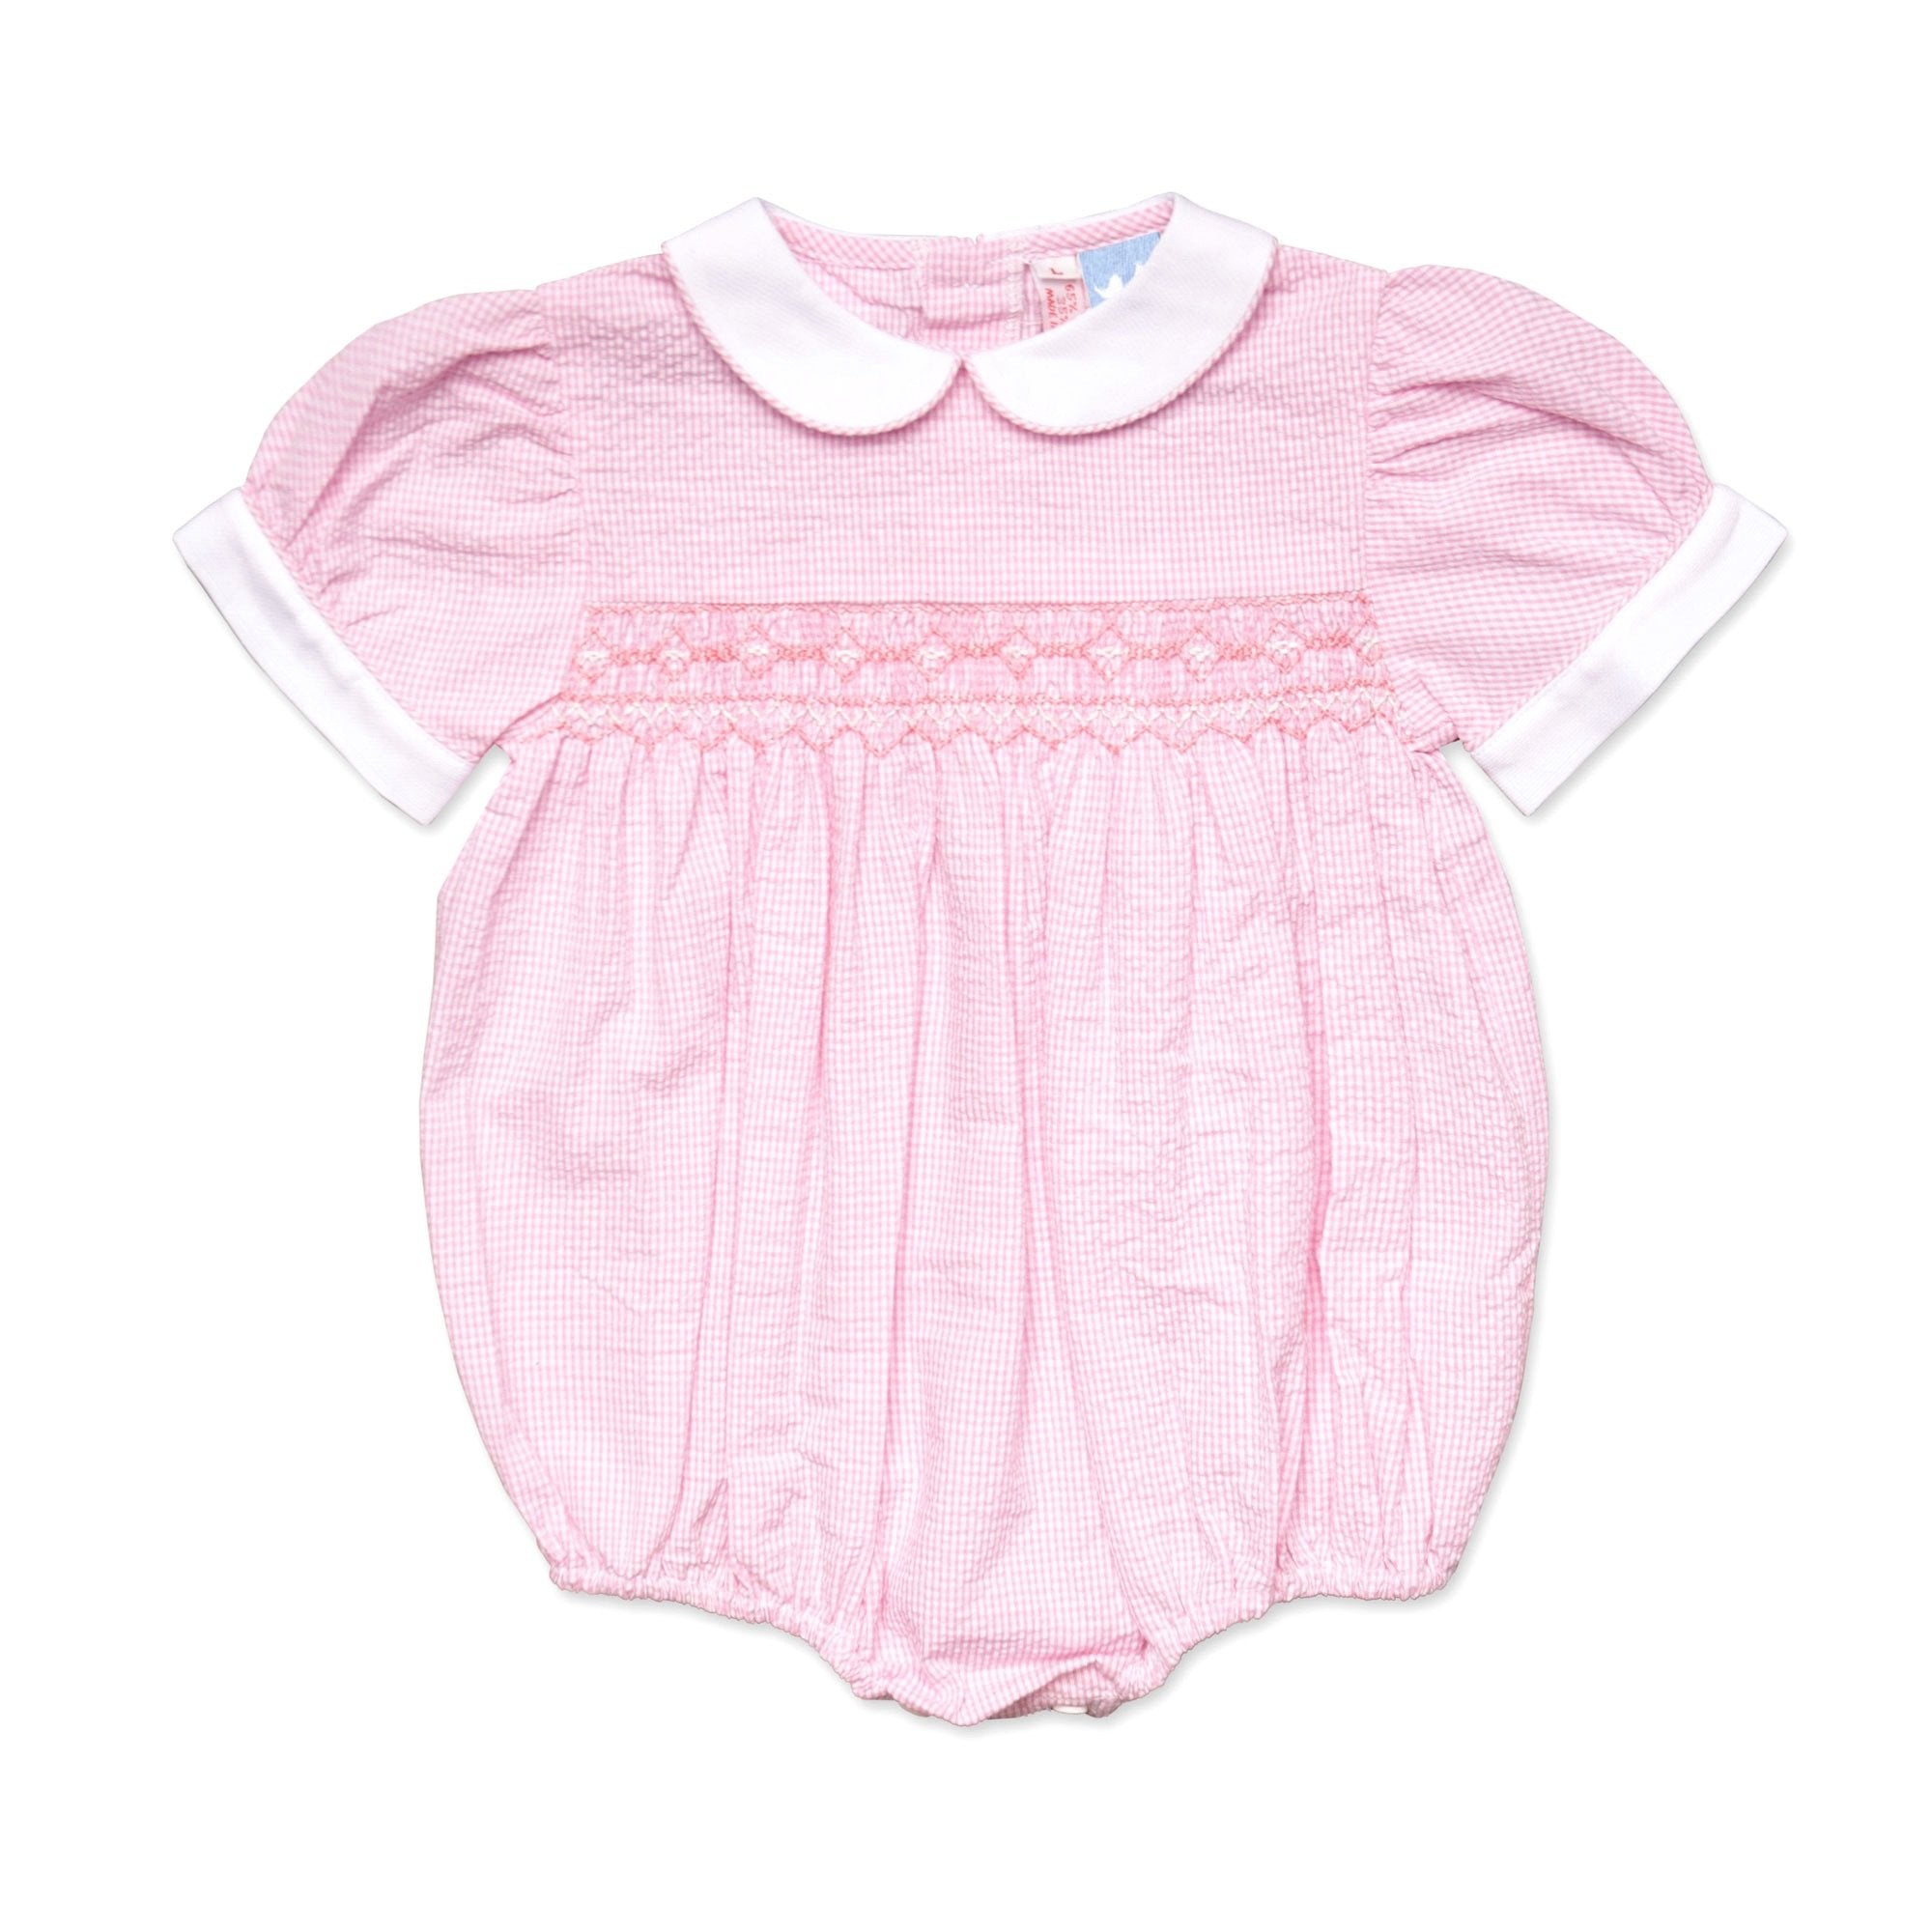 TILLY PINK AND WHITE SMOCKED SEERSUCKER ROMPER